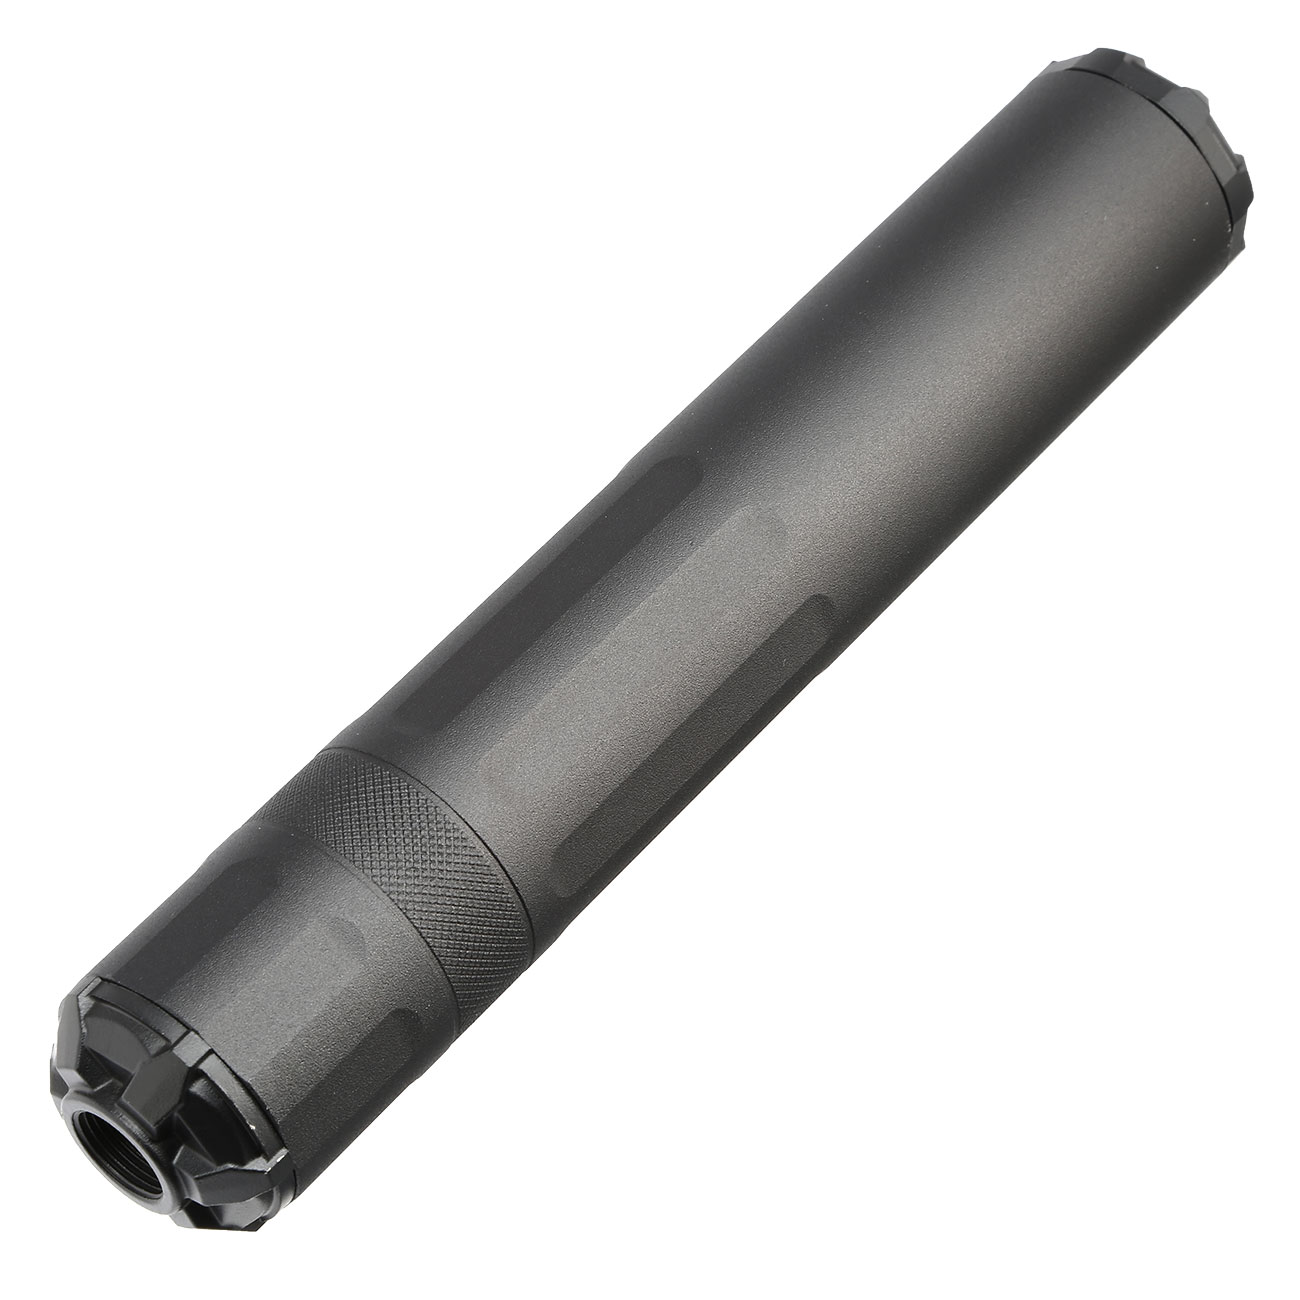 G&G GOMS MK1 Aluminium Tactical Silencer 210mm 14mm- schwarz 1